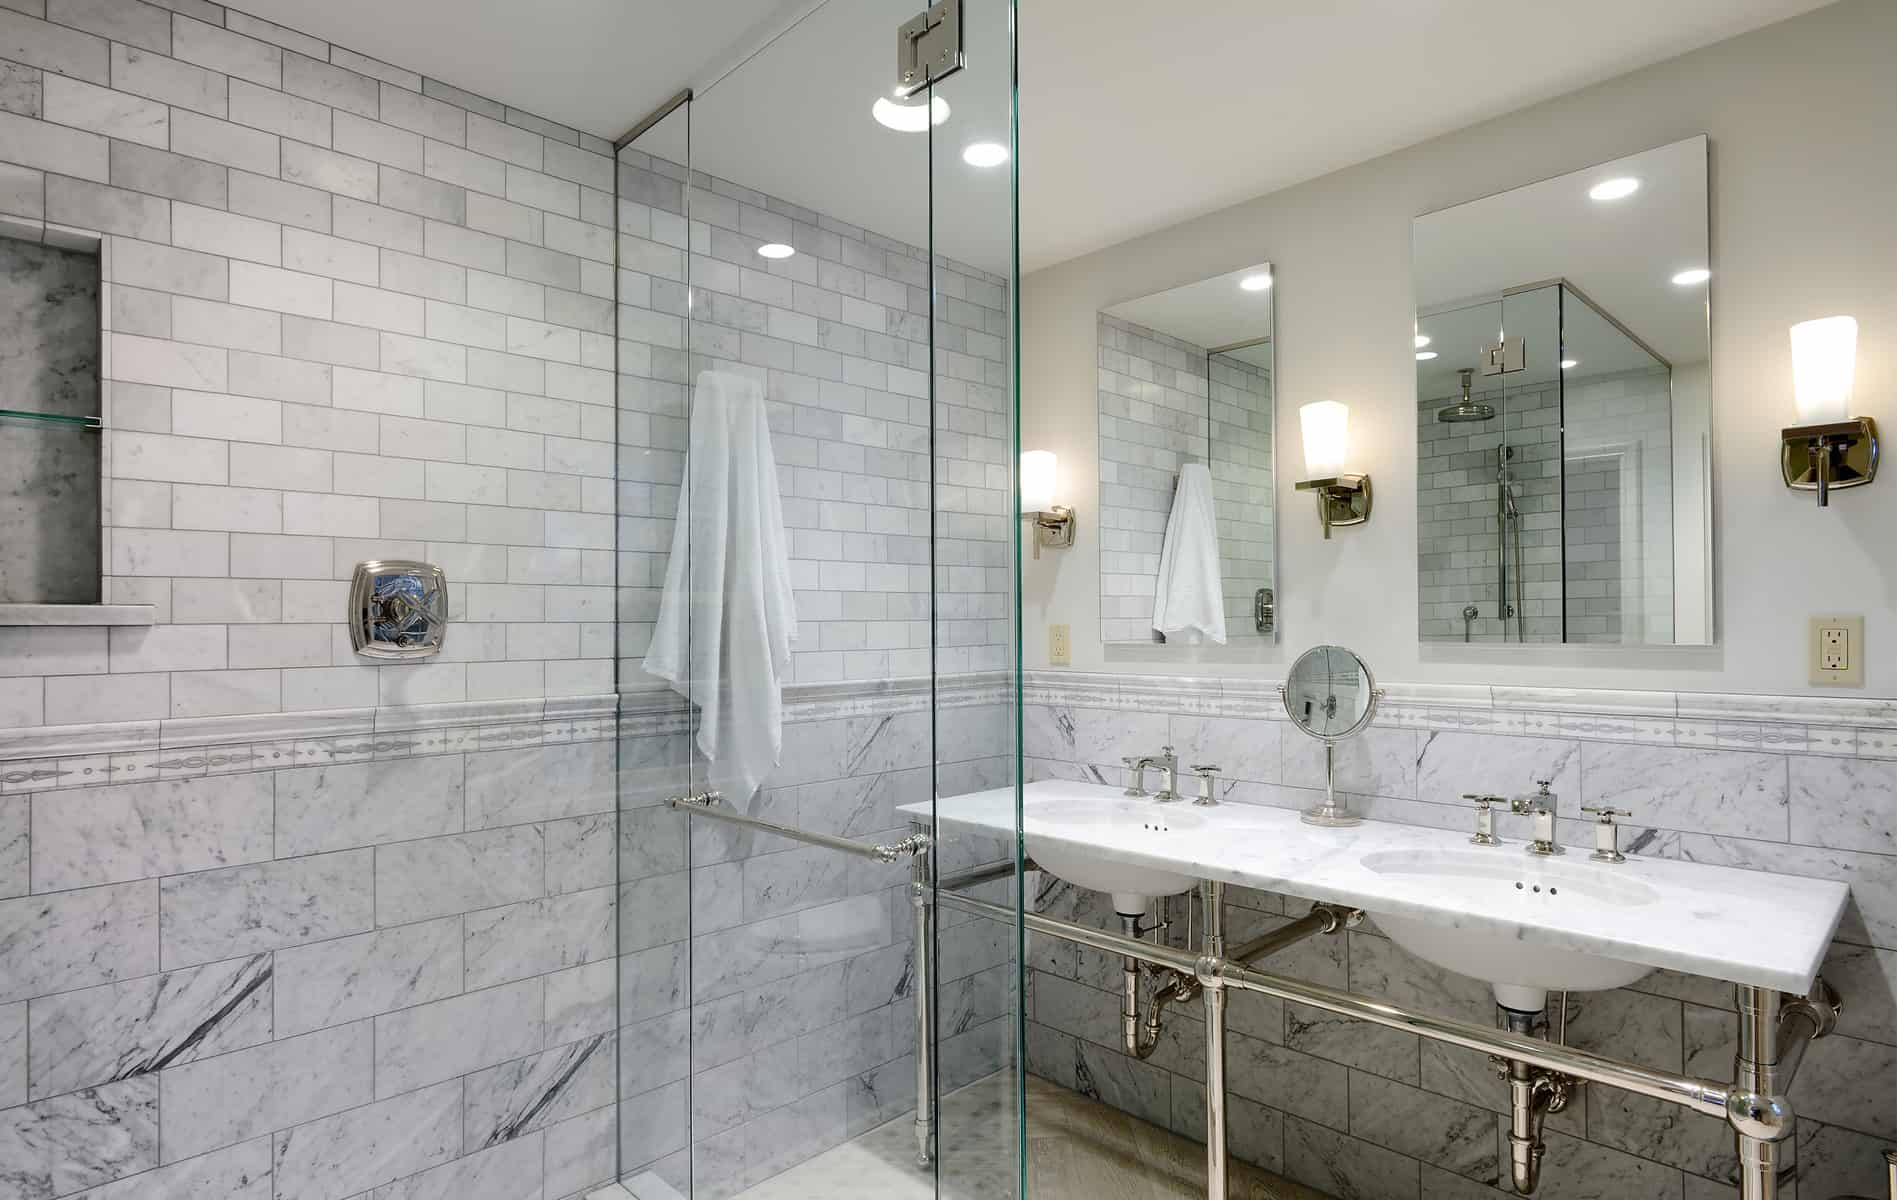 7 smart strategies for bathroom remodeling biederman for Best bathroom renovations